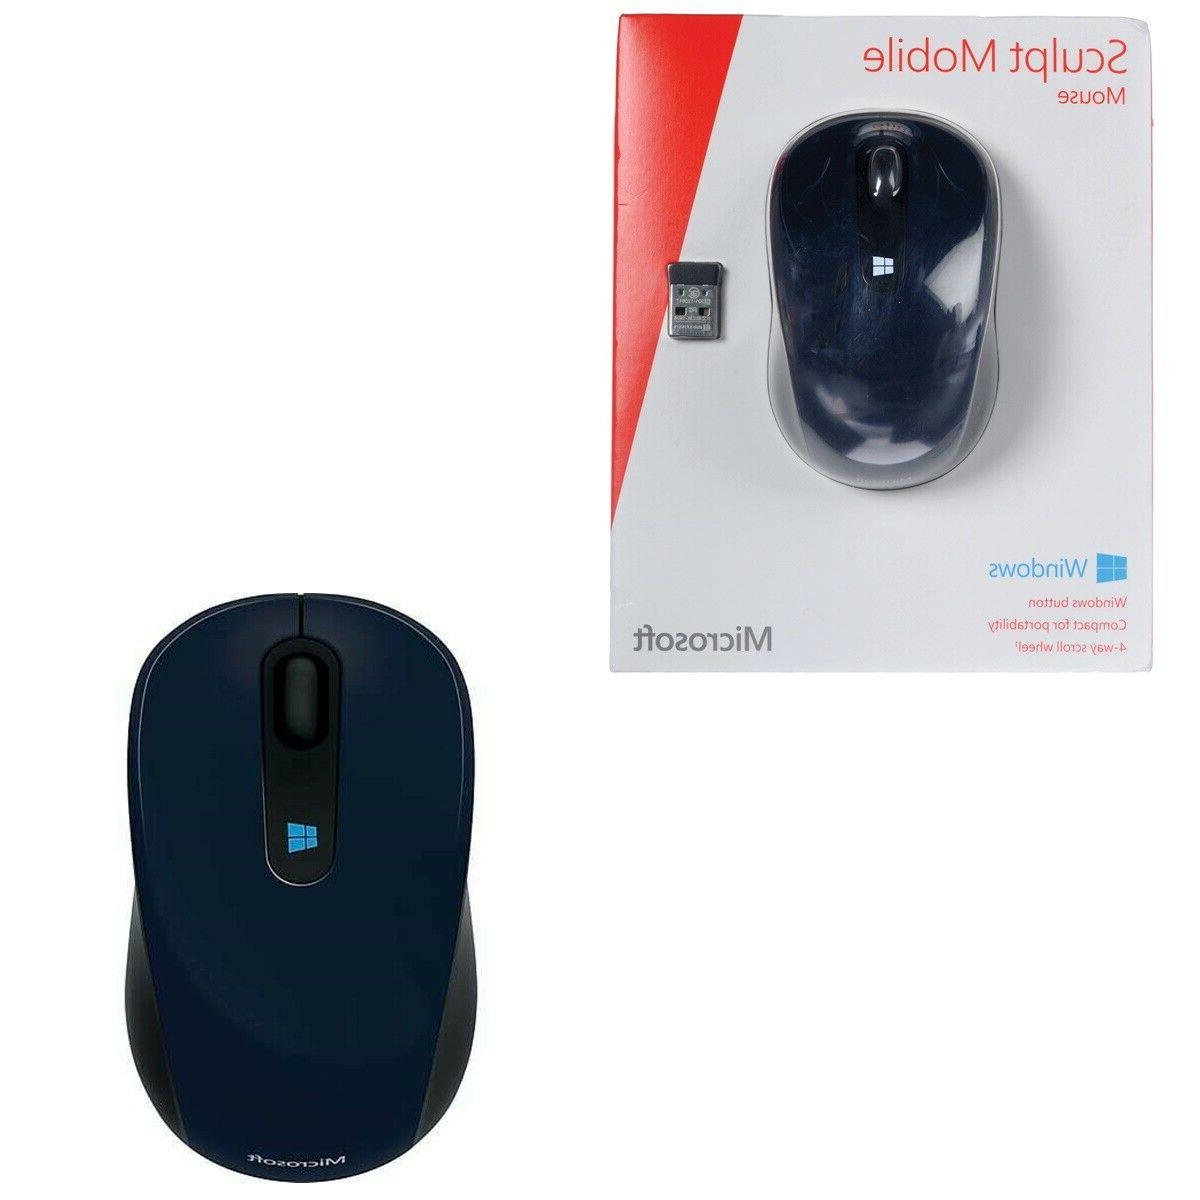 sculpt mobile mouse wireless cordless usb receiver